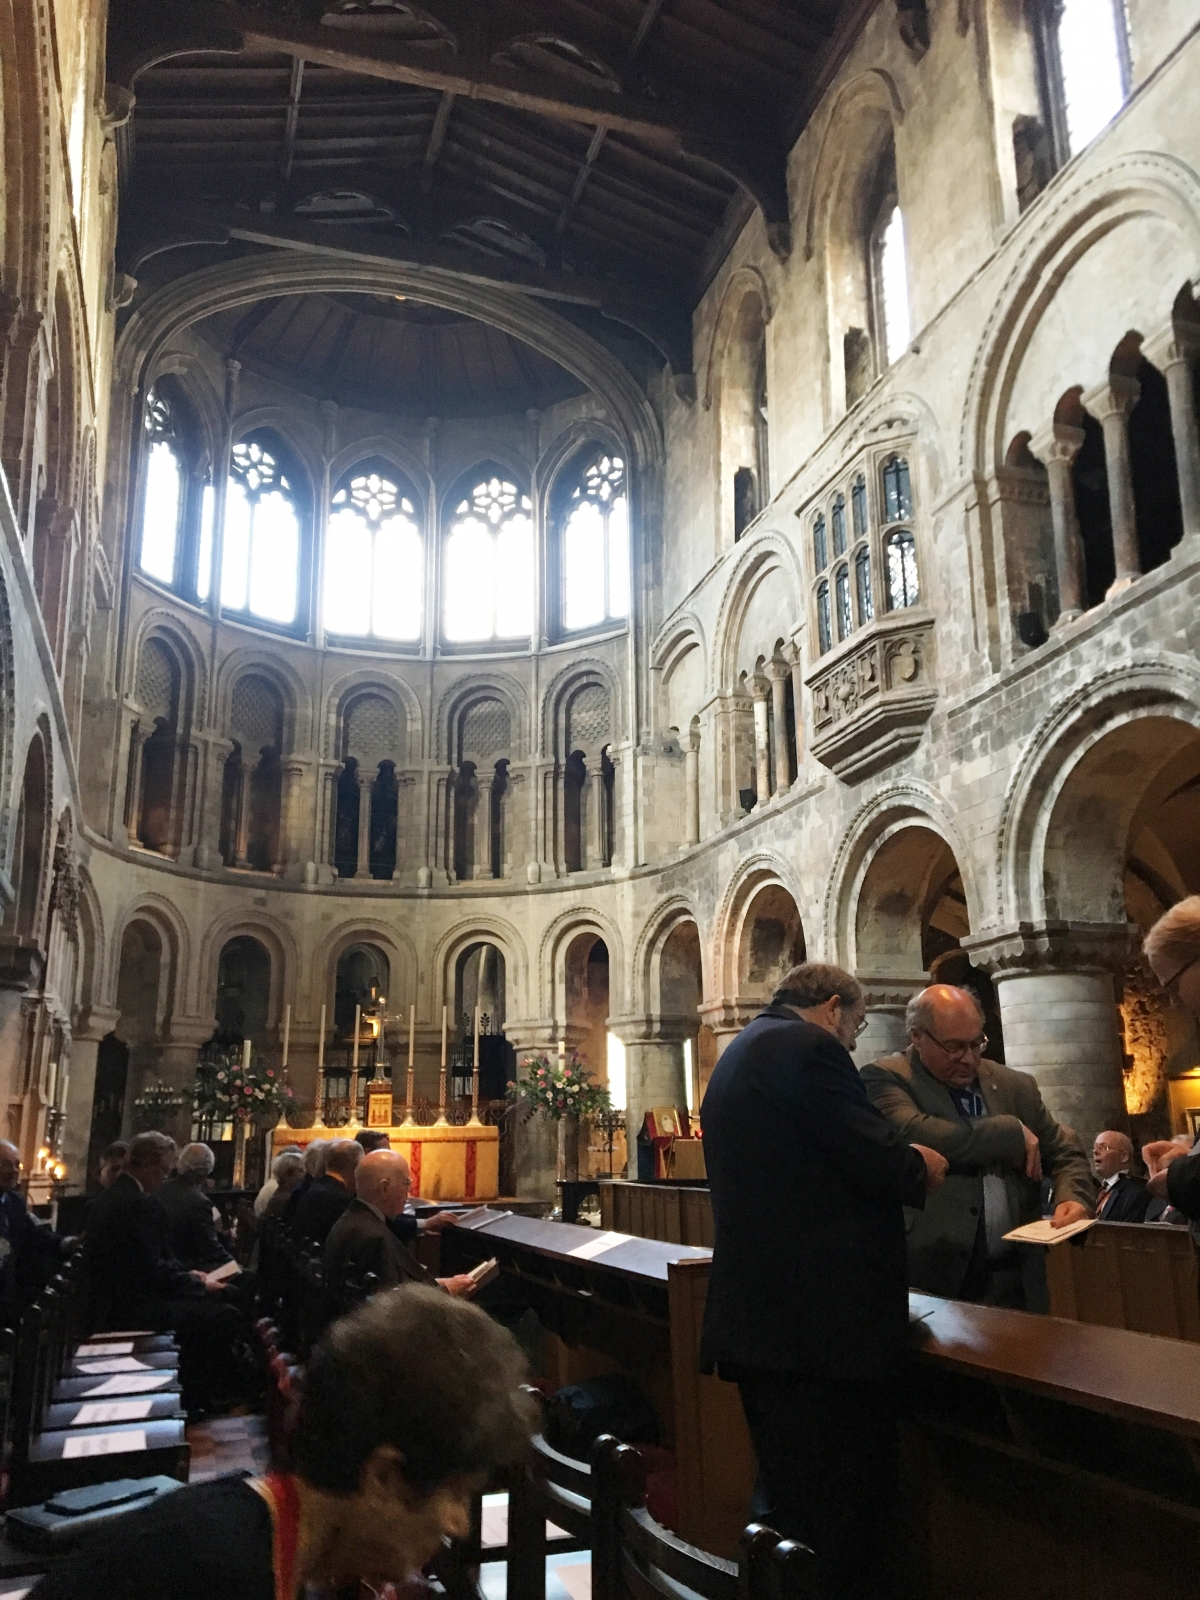 Barts View Day and Reception, Priory Church/Barts Great Hall